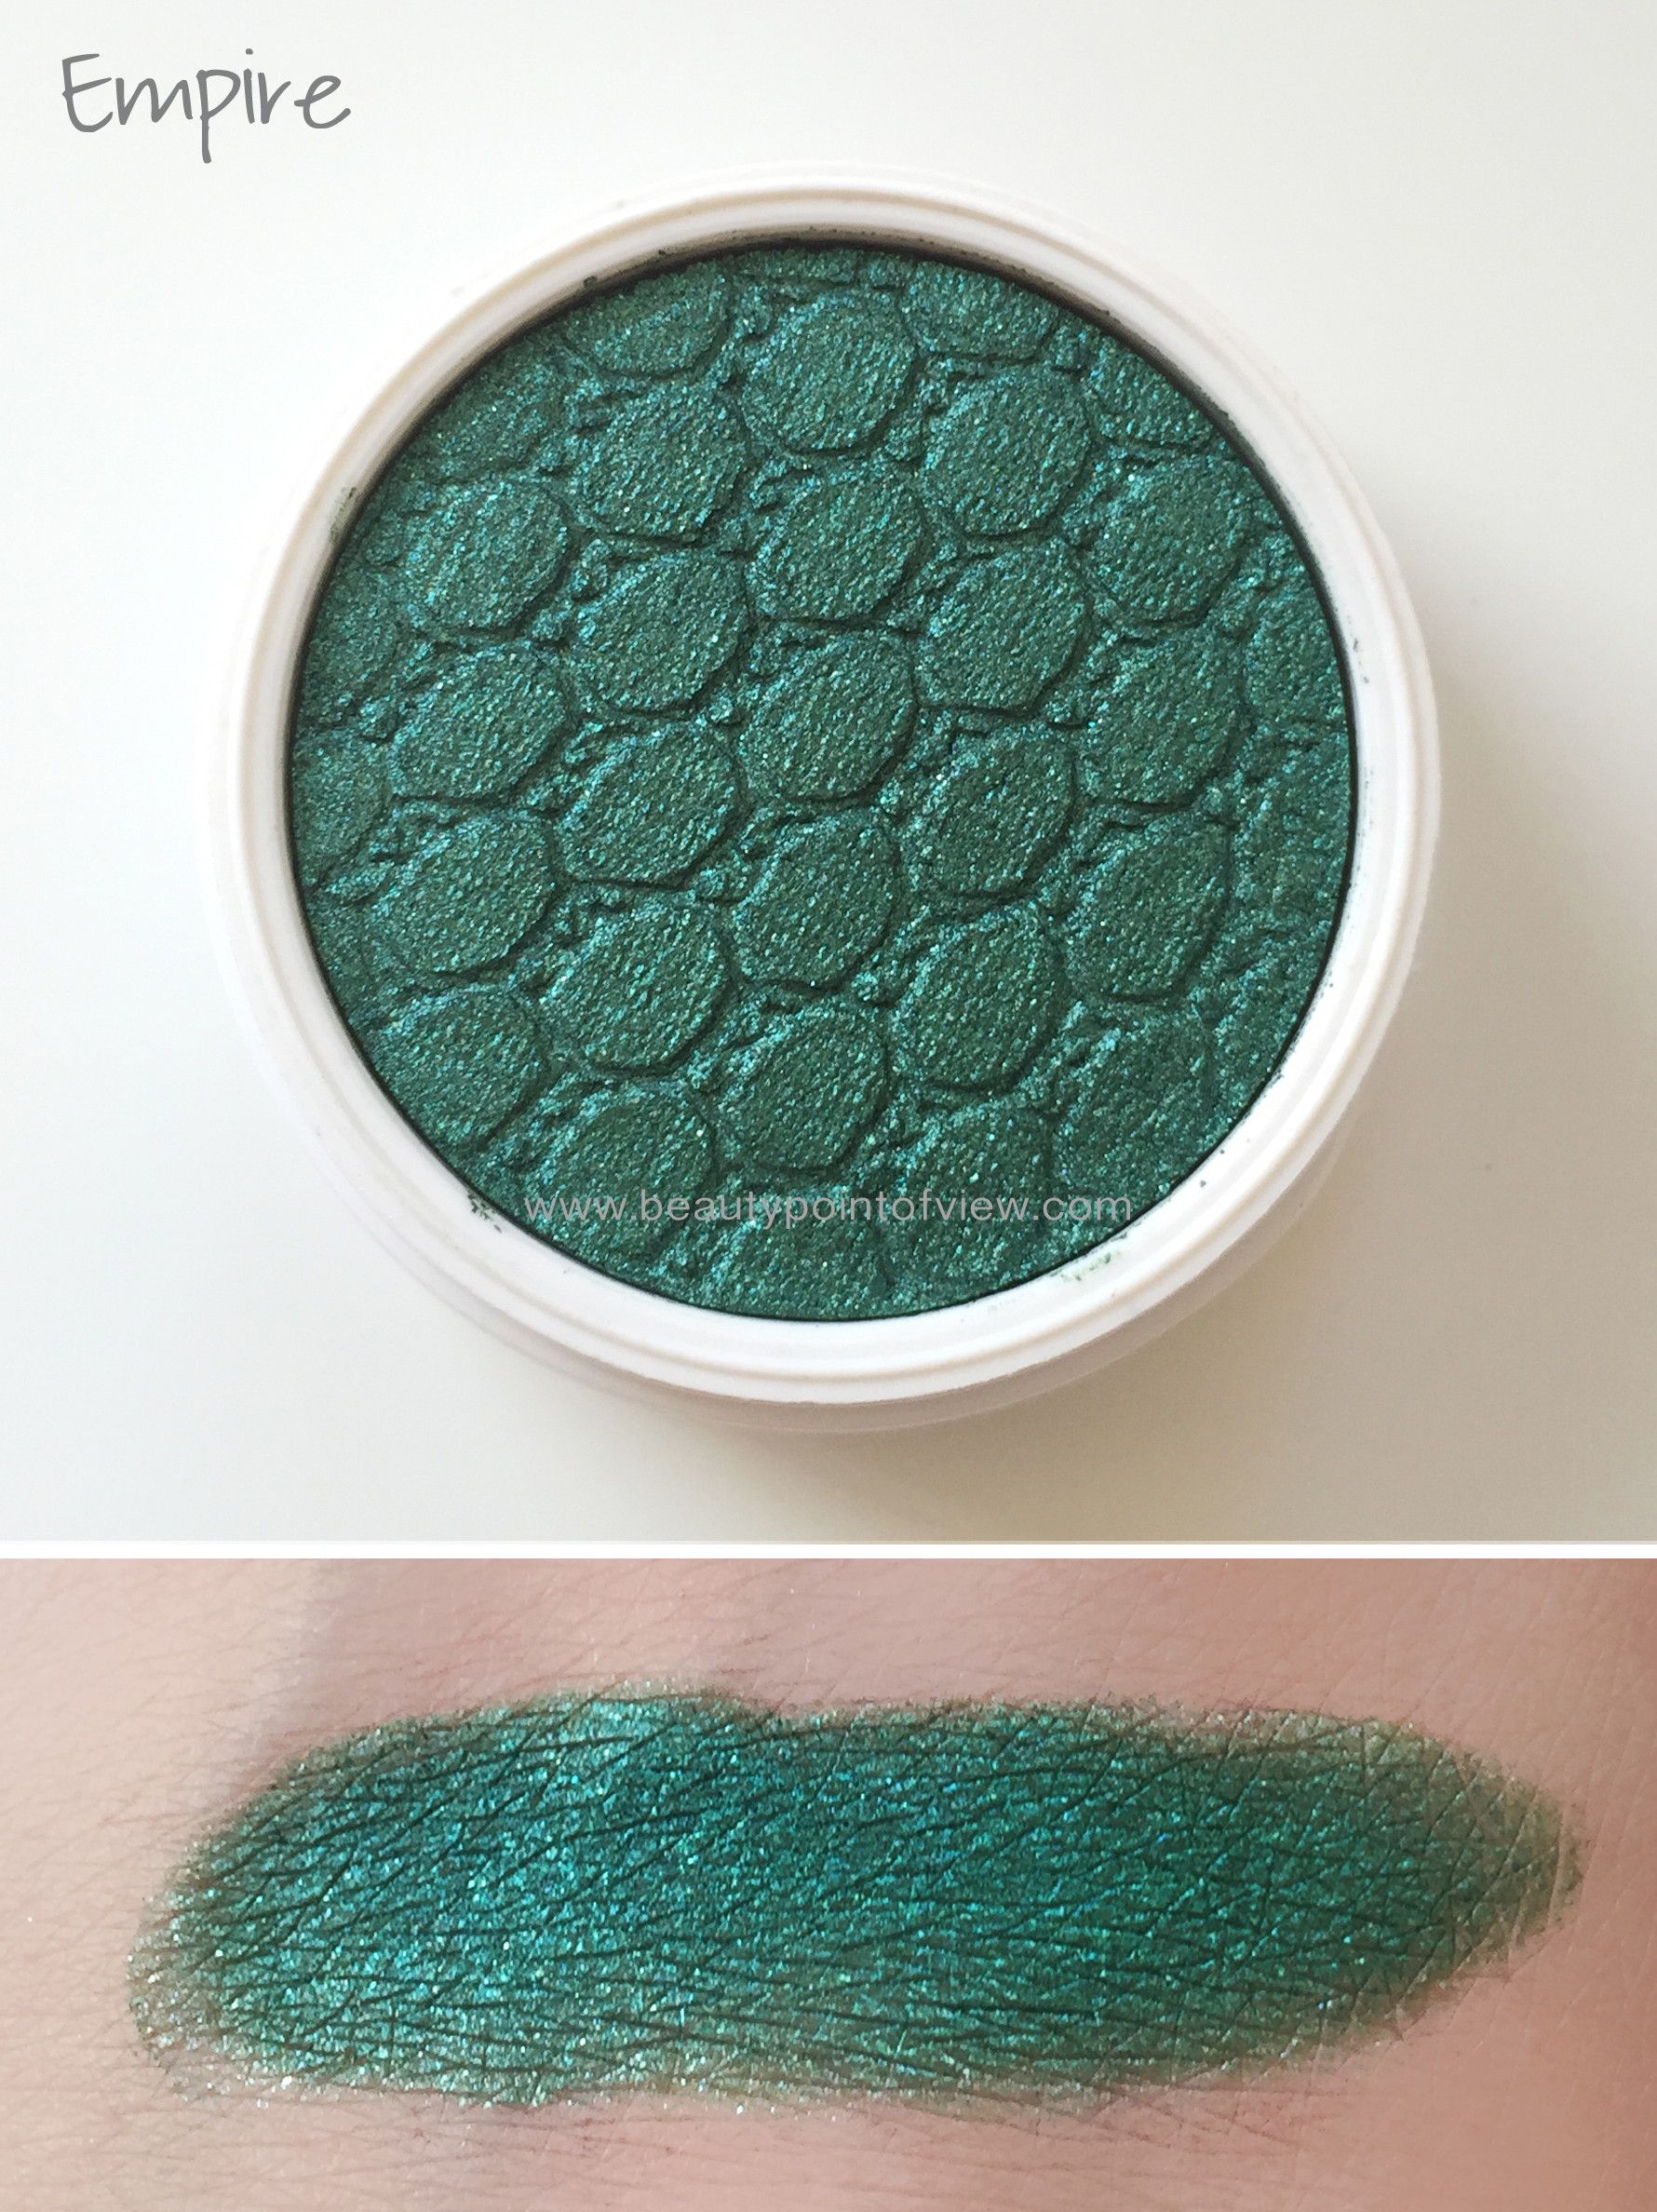 Colourpop Super Shock Eyeshadows - Empire